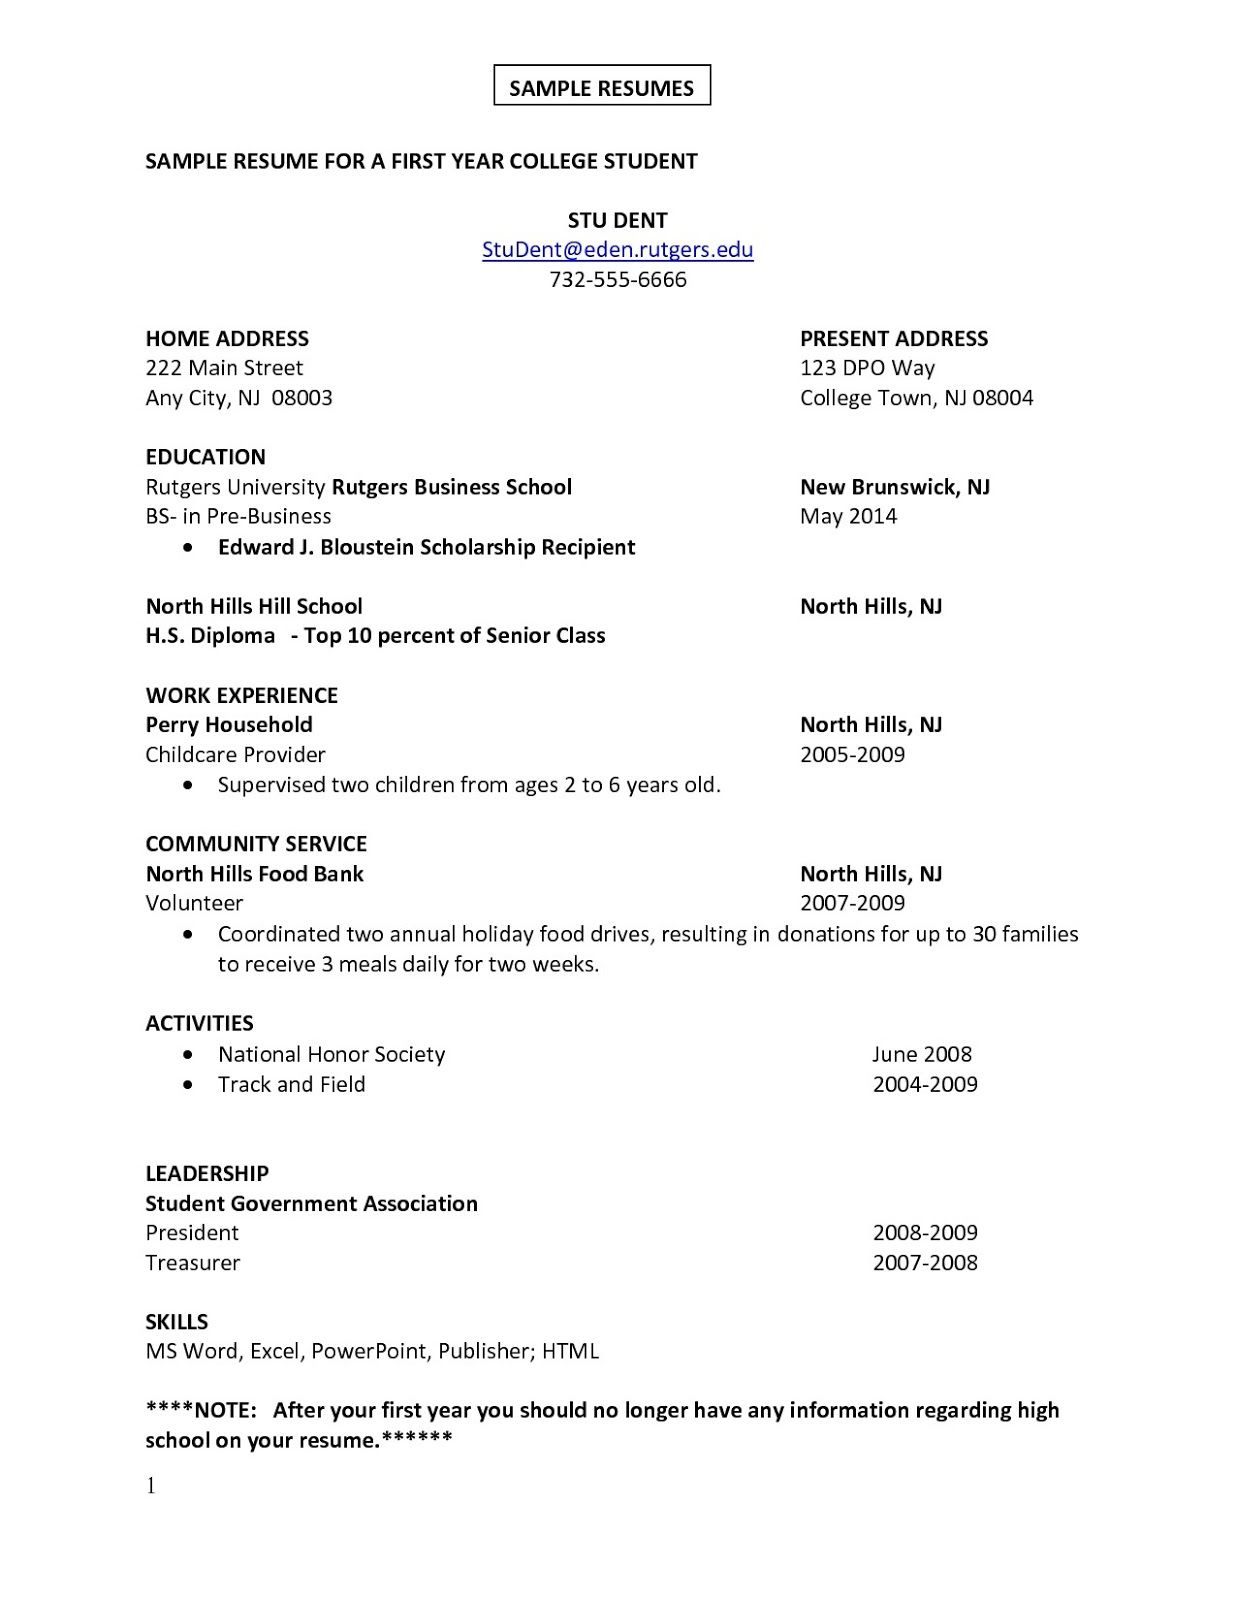 Format For A Resume For A Job First Job Sample Resume Sample Resumes Sample Resumes